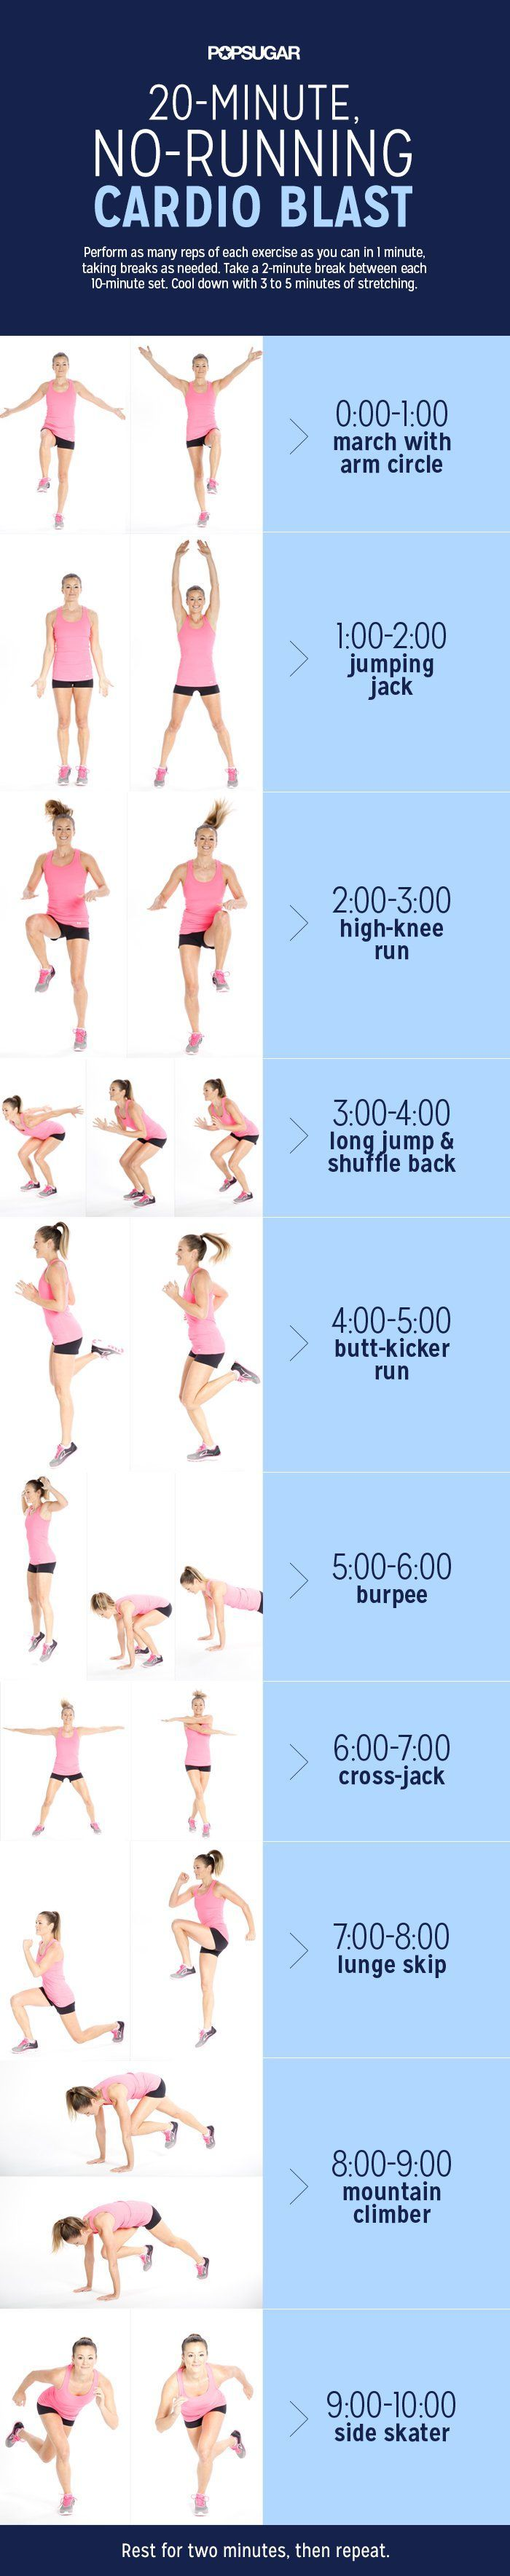 20-Minute No-Running Cardio Blast